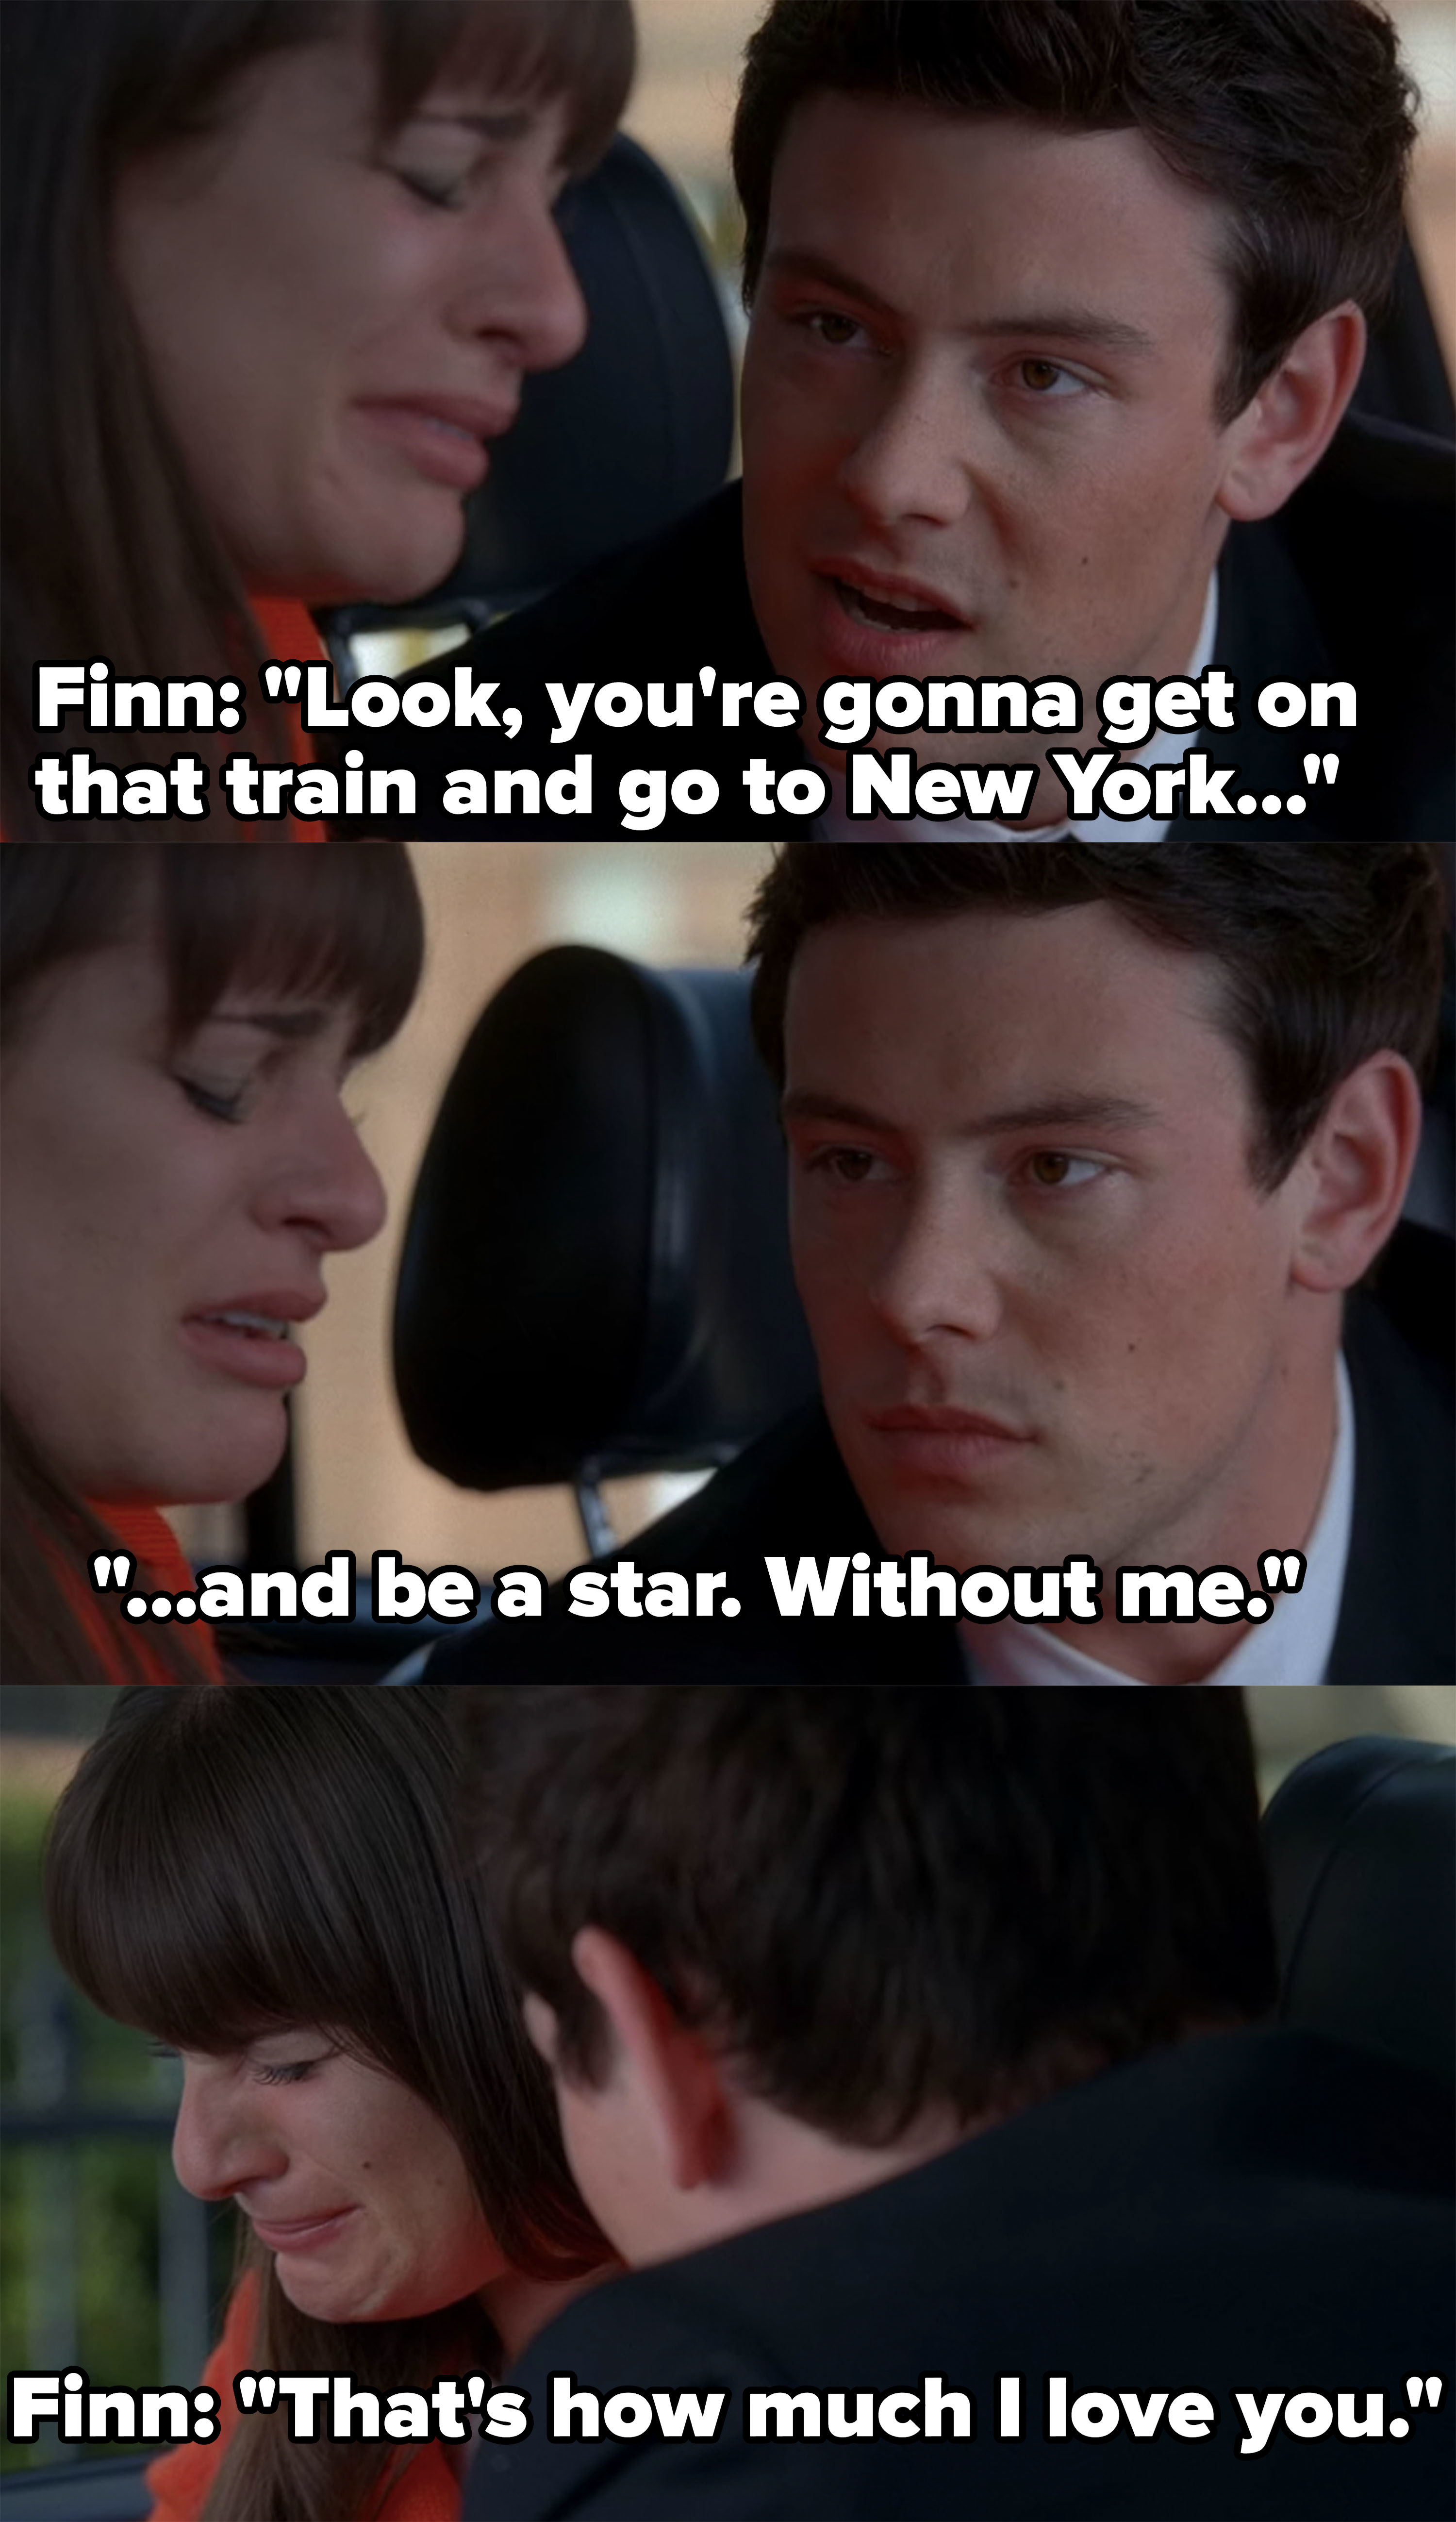 Finn tells Rachel to go to New York and be a star without him